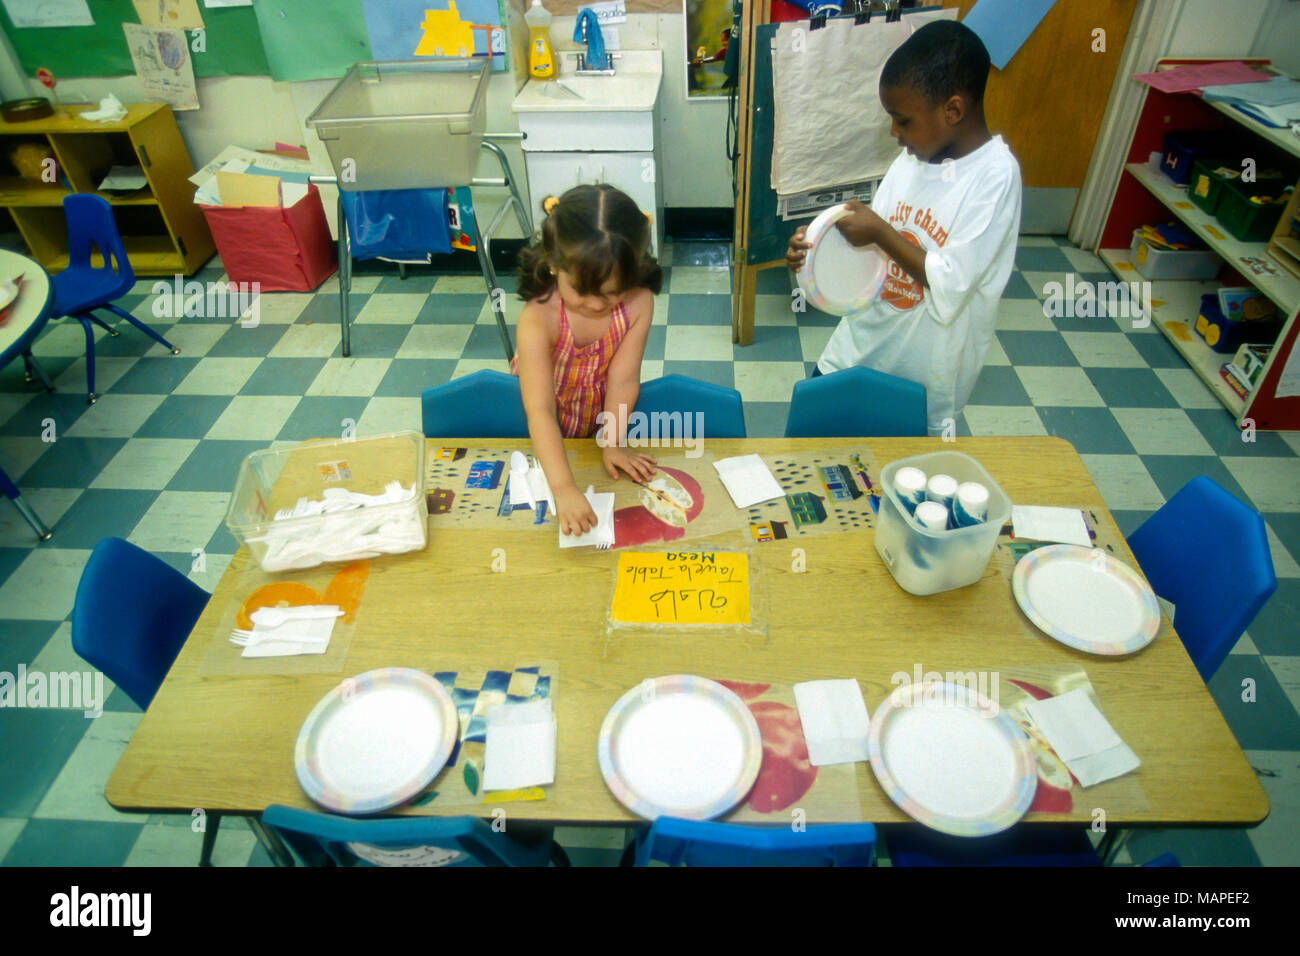 Preschool Lunch Table On Grammar Elementary And Preschool Students Prepare For Eat Lunch In School